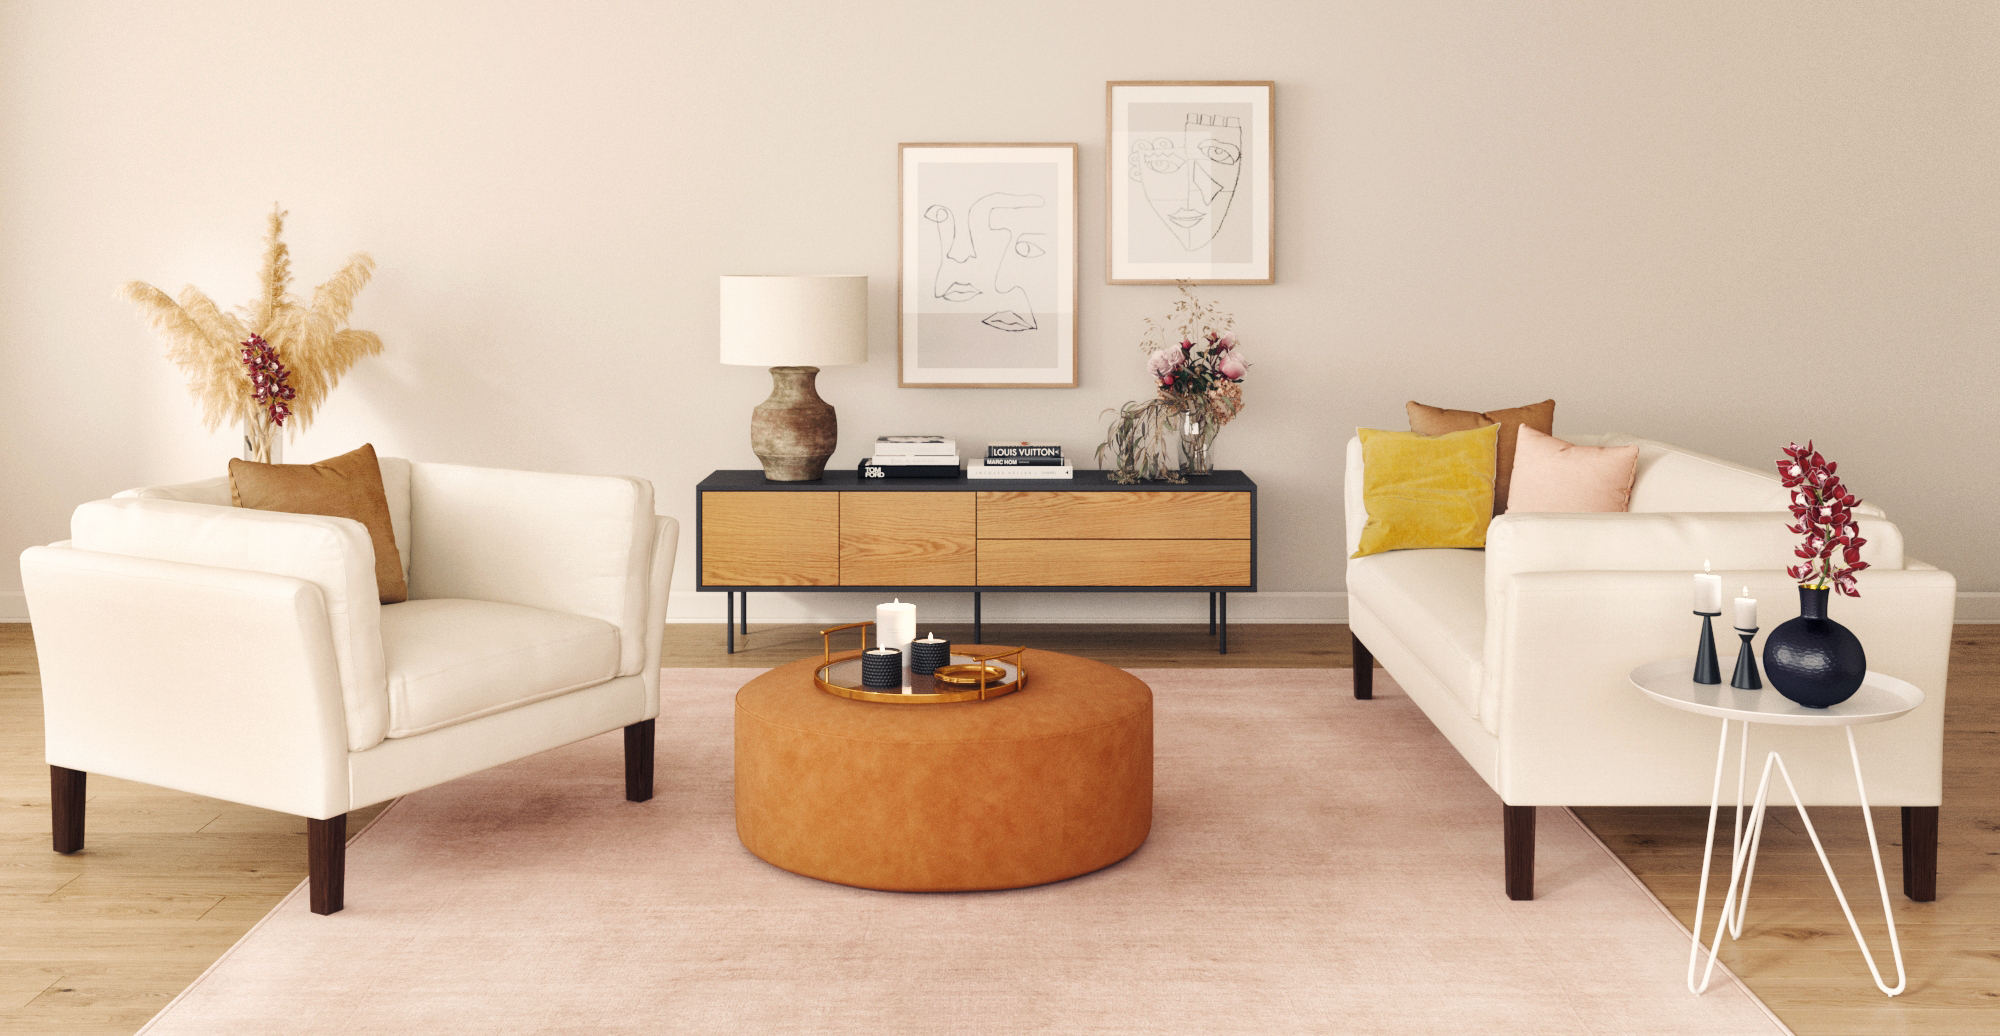 Brosa Alexa Large Leather Round Ottoman styled in mid century modern living room